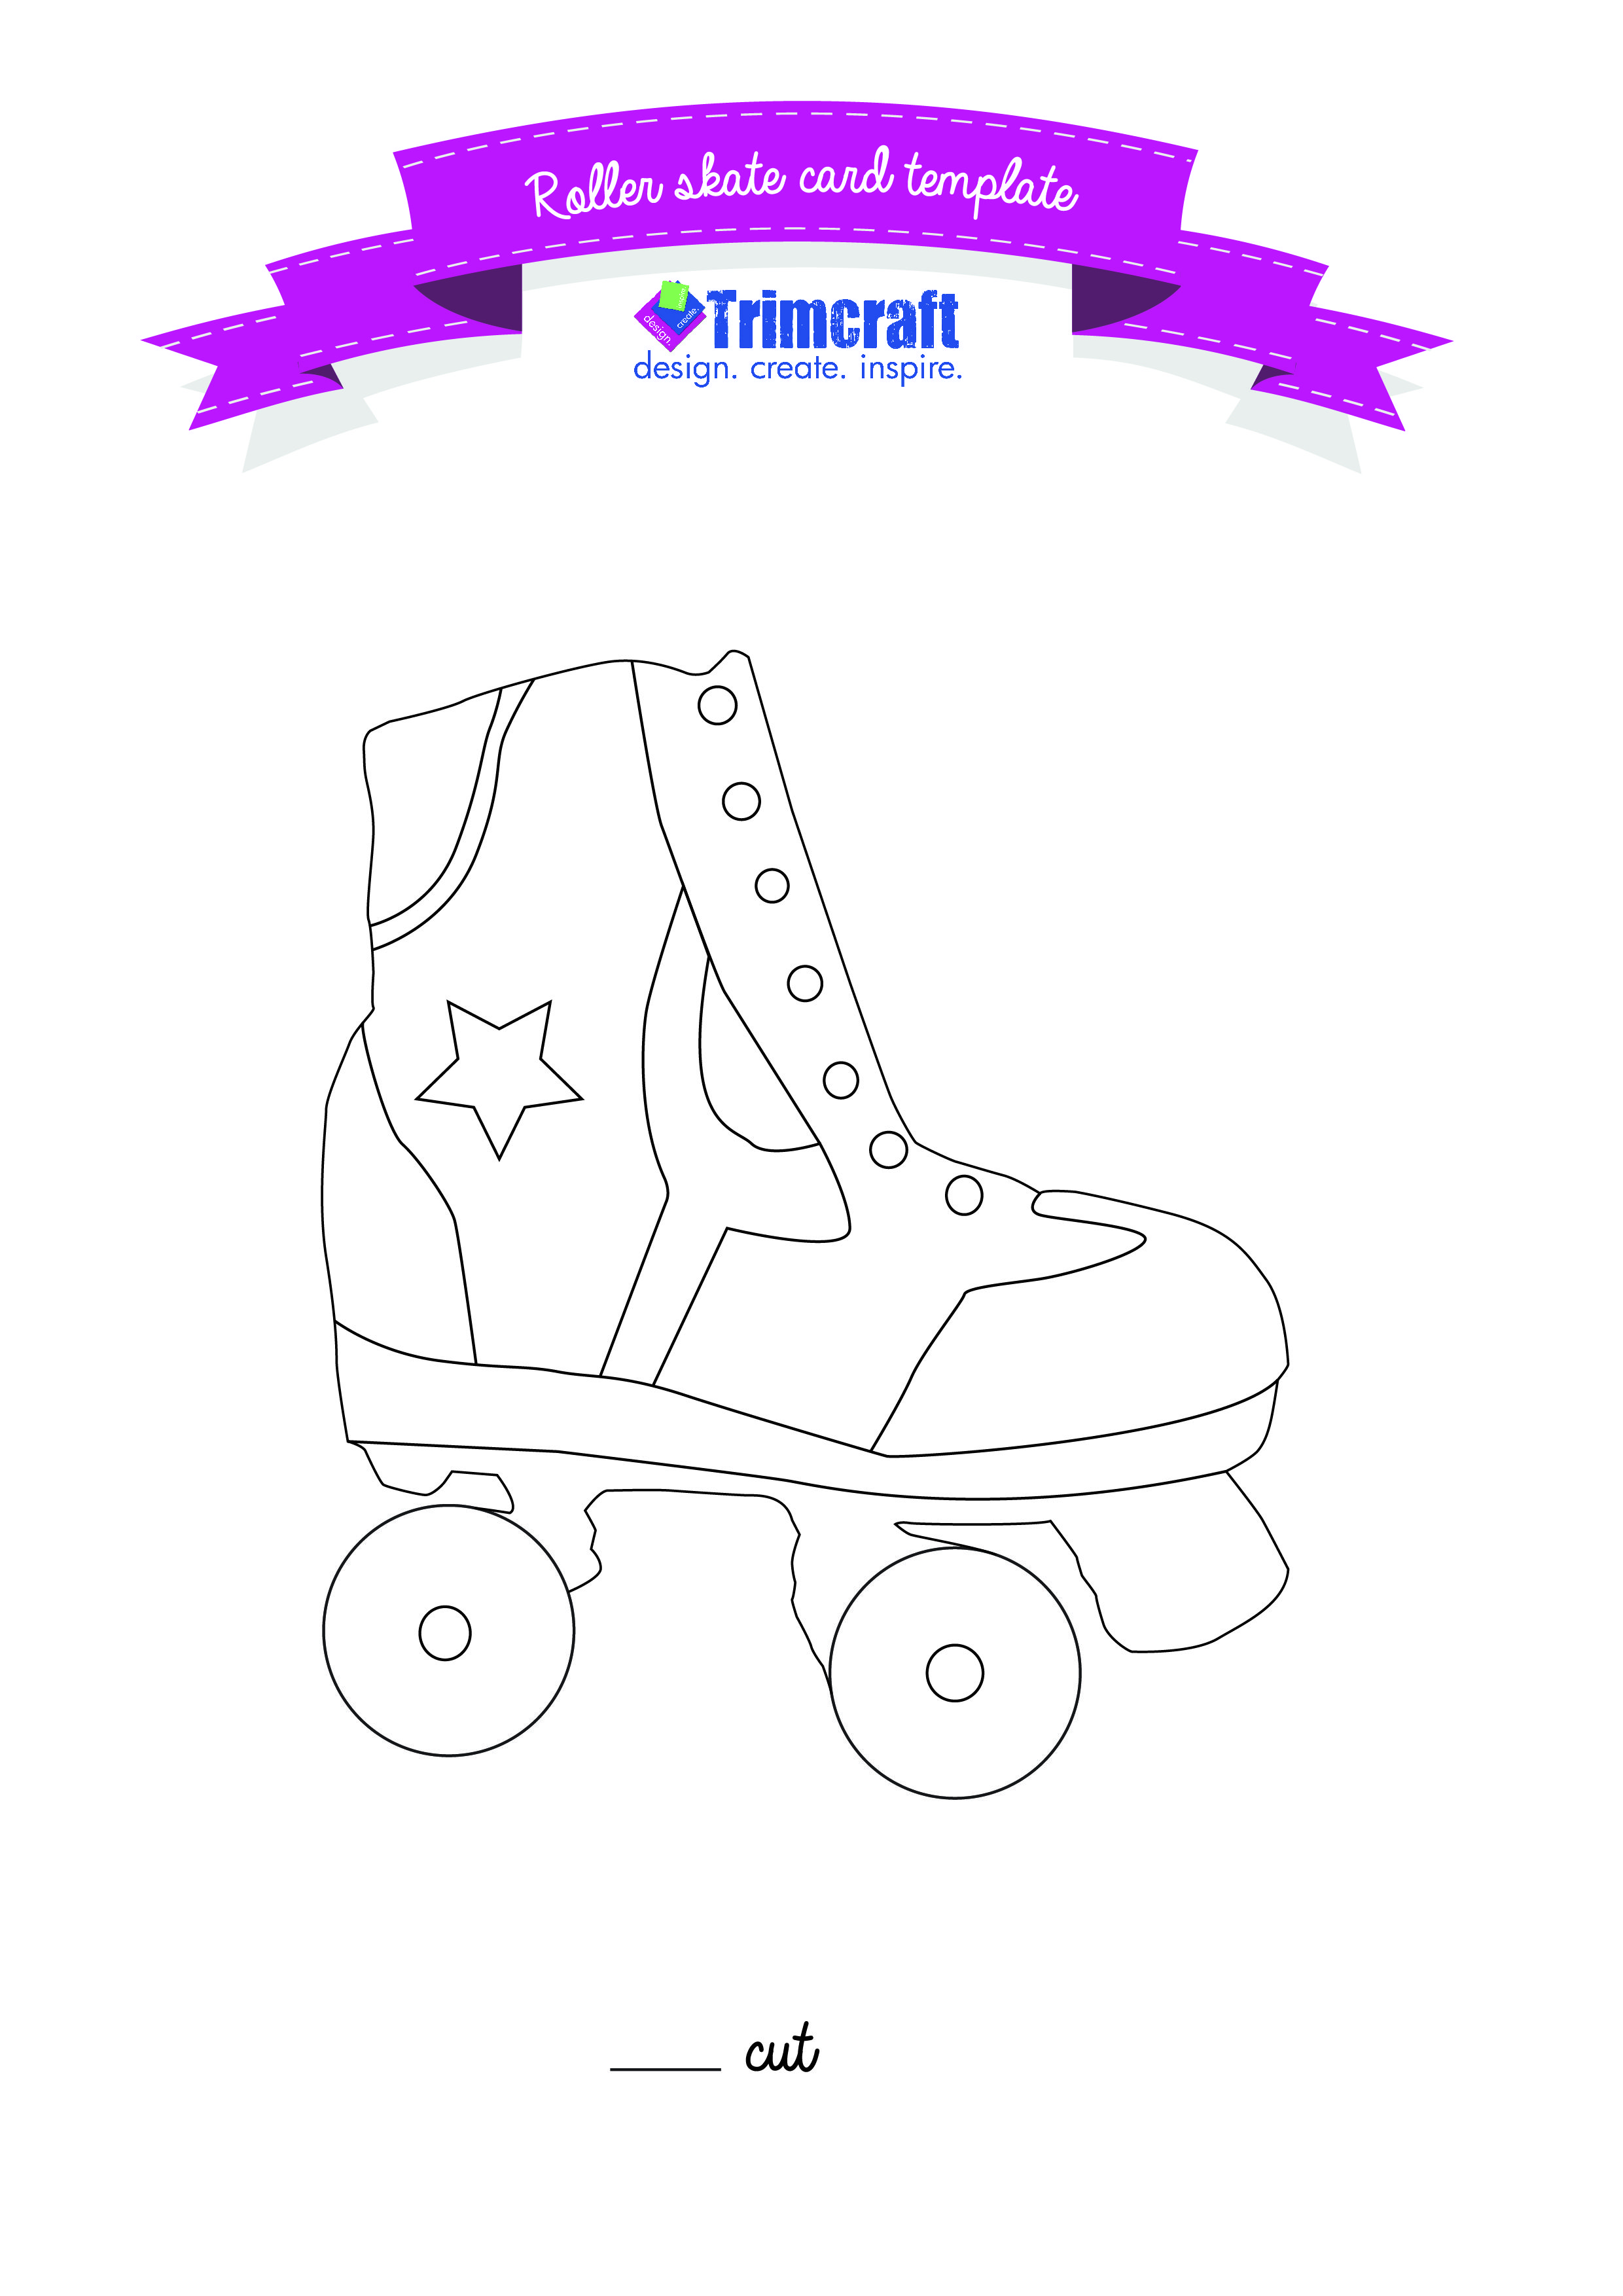 photo relating to Roller Skate Template Printable named Pin via Amanda Harrod upon Templates - Outfits and Footwear